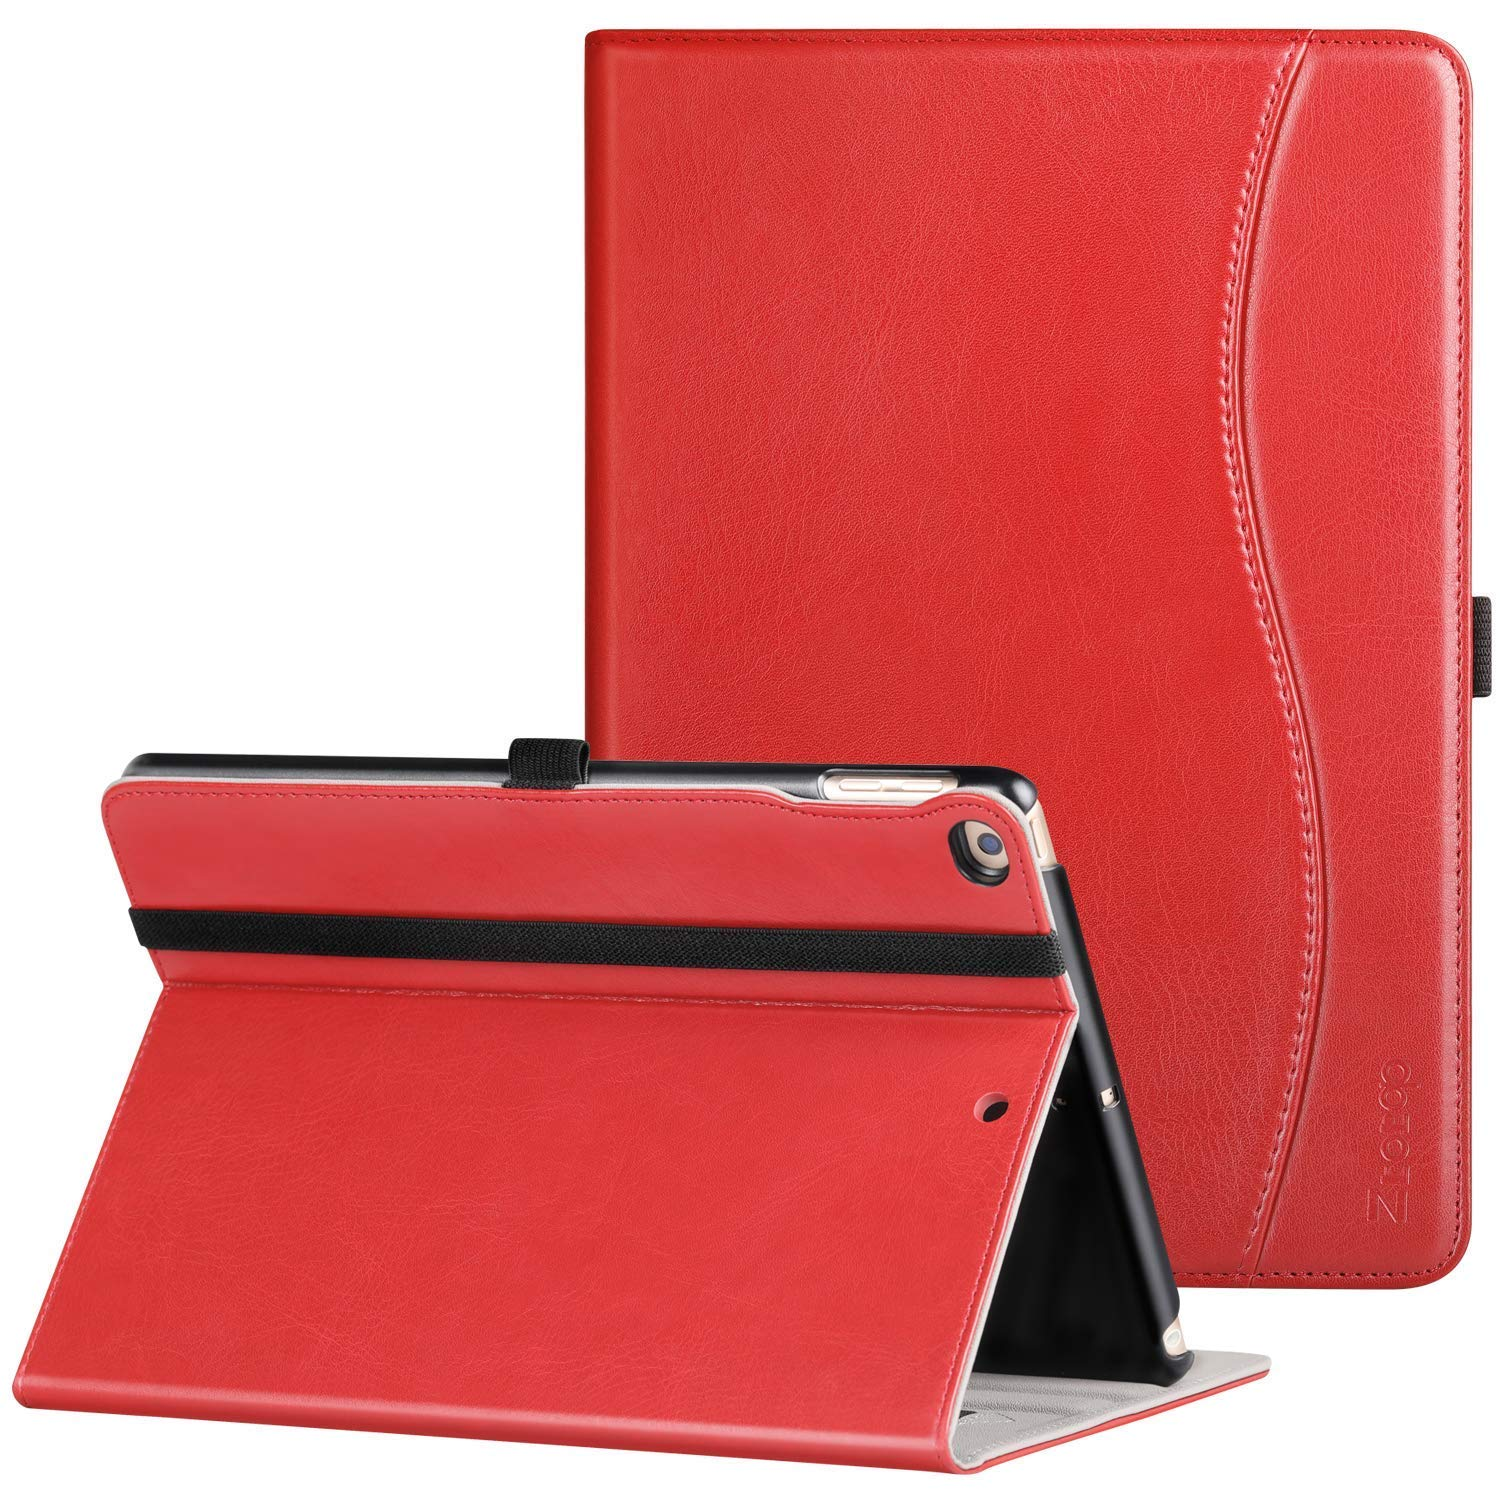 Slim leather iPad cover in red - Enuoy 7 Simple Ideas to Add Smiles to White Rooms + Funny Quotes!